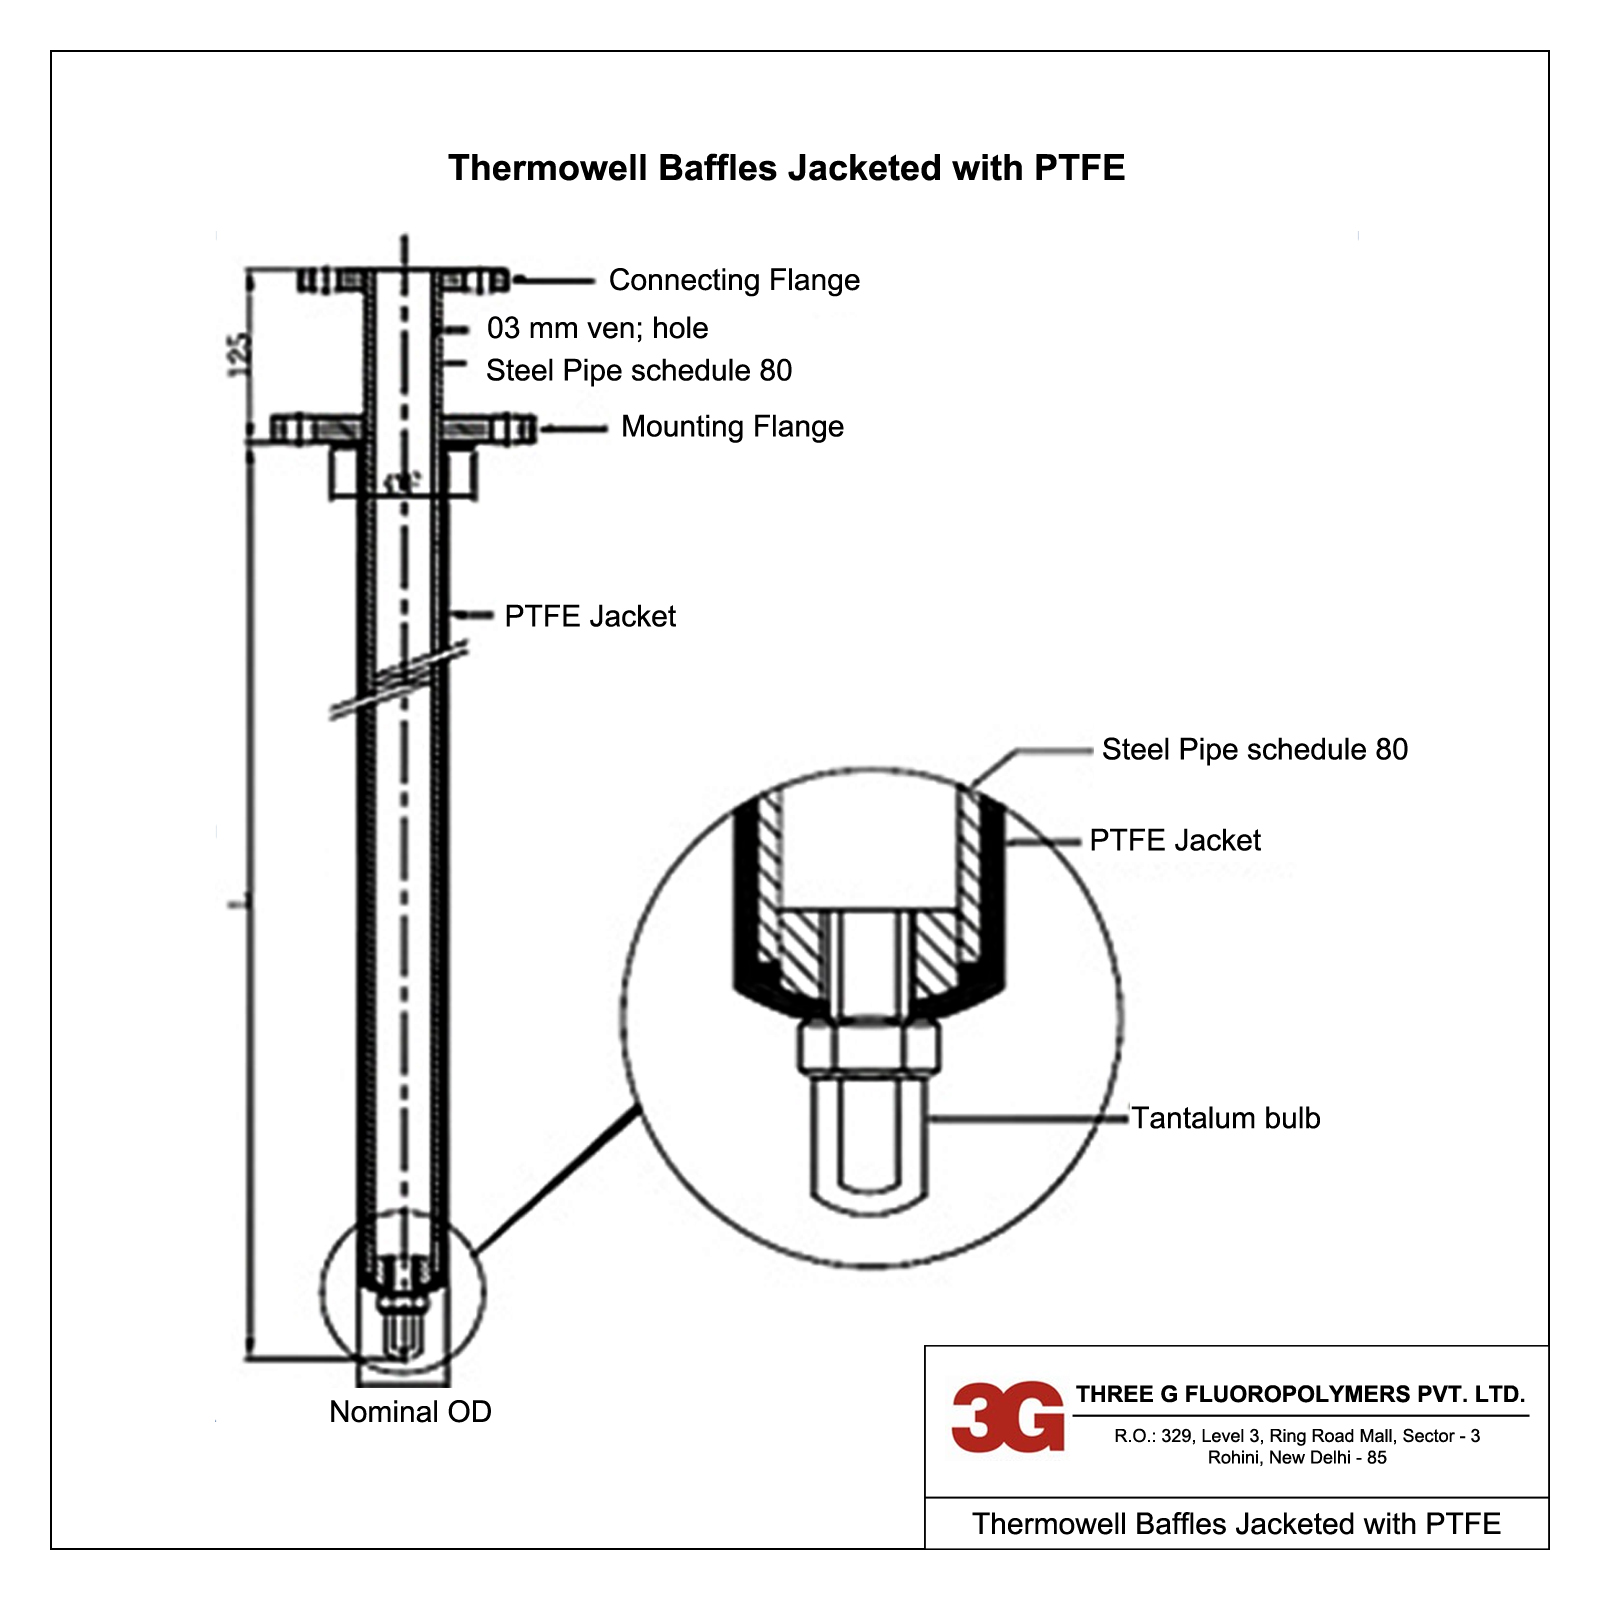 Thermowell Baffles